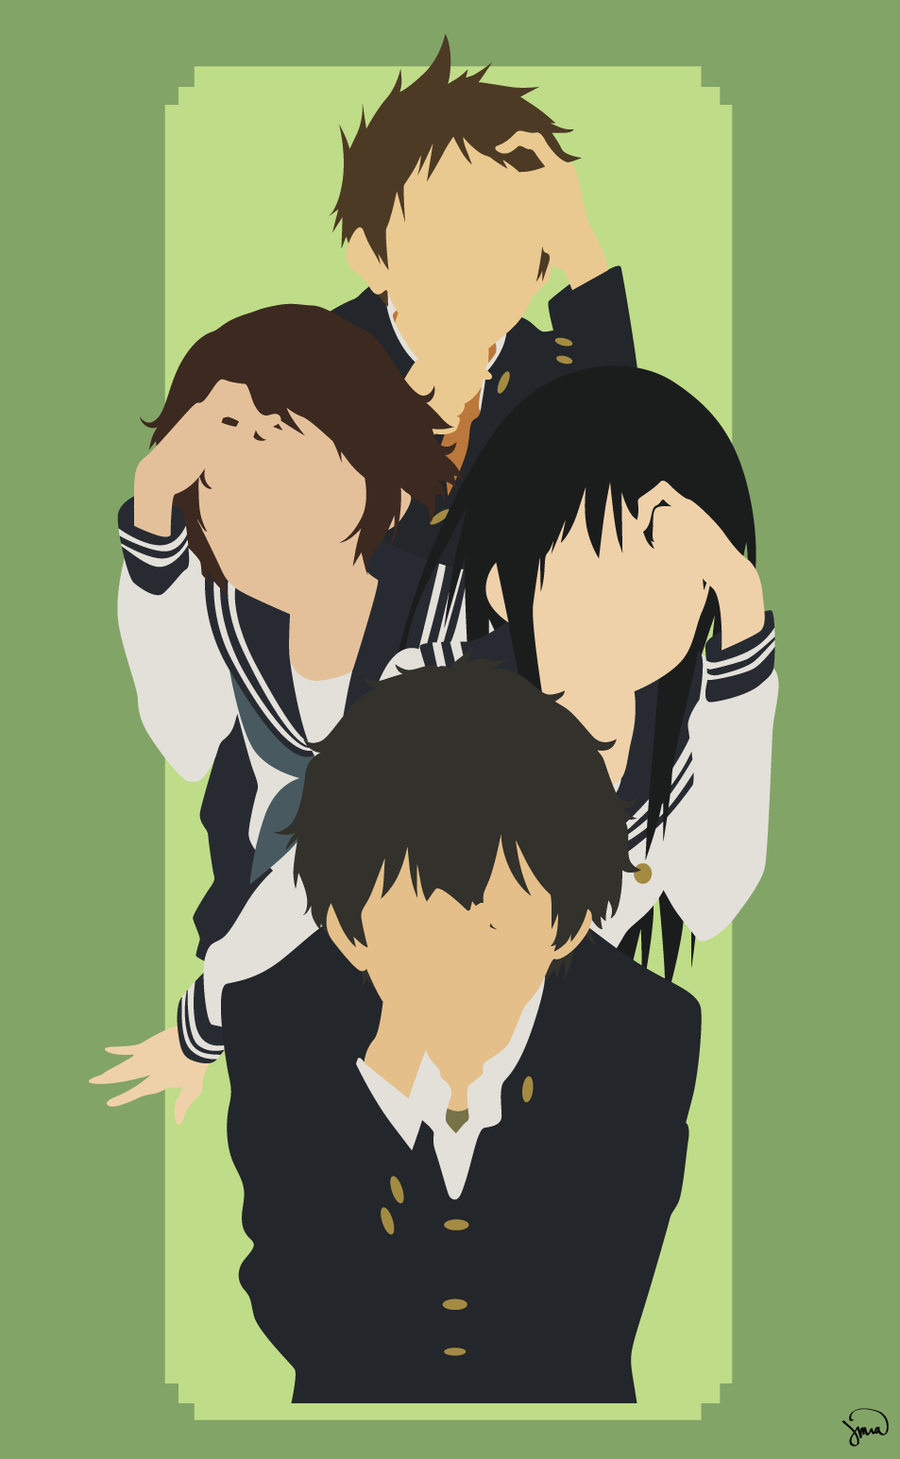 Hyouka by greenmapple17 on DeviantArt.